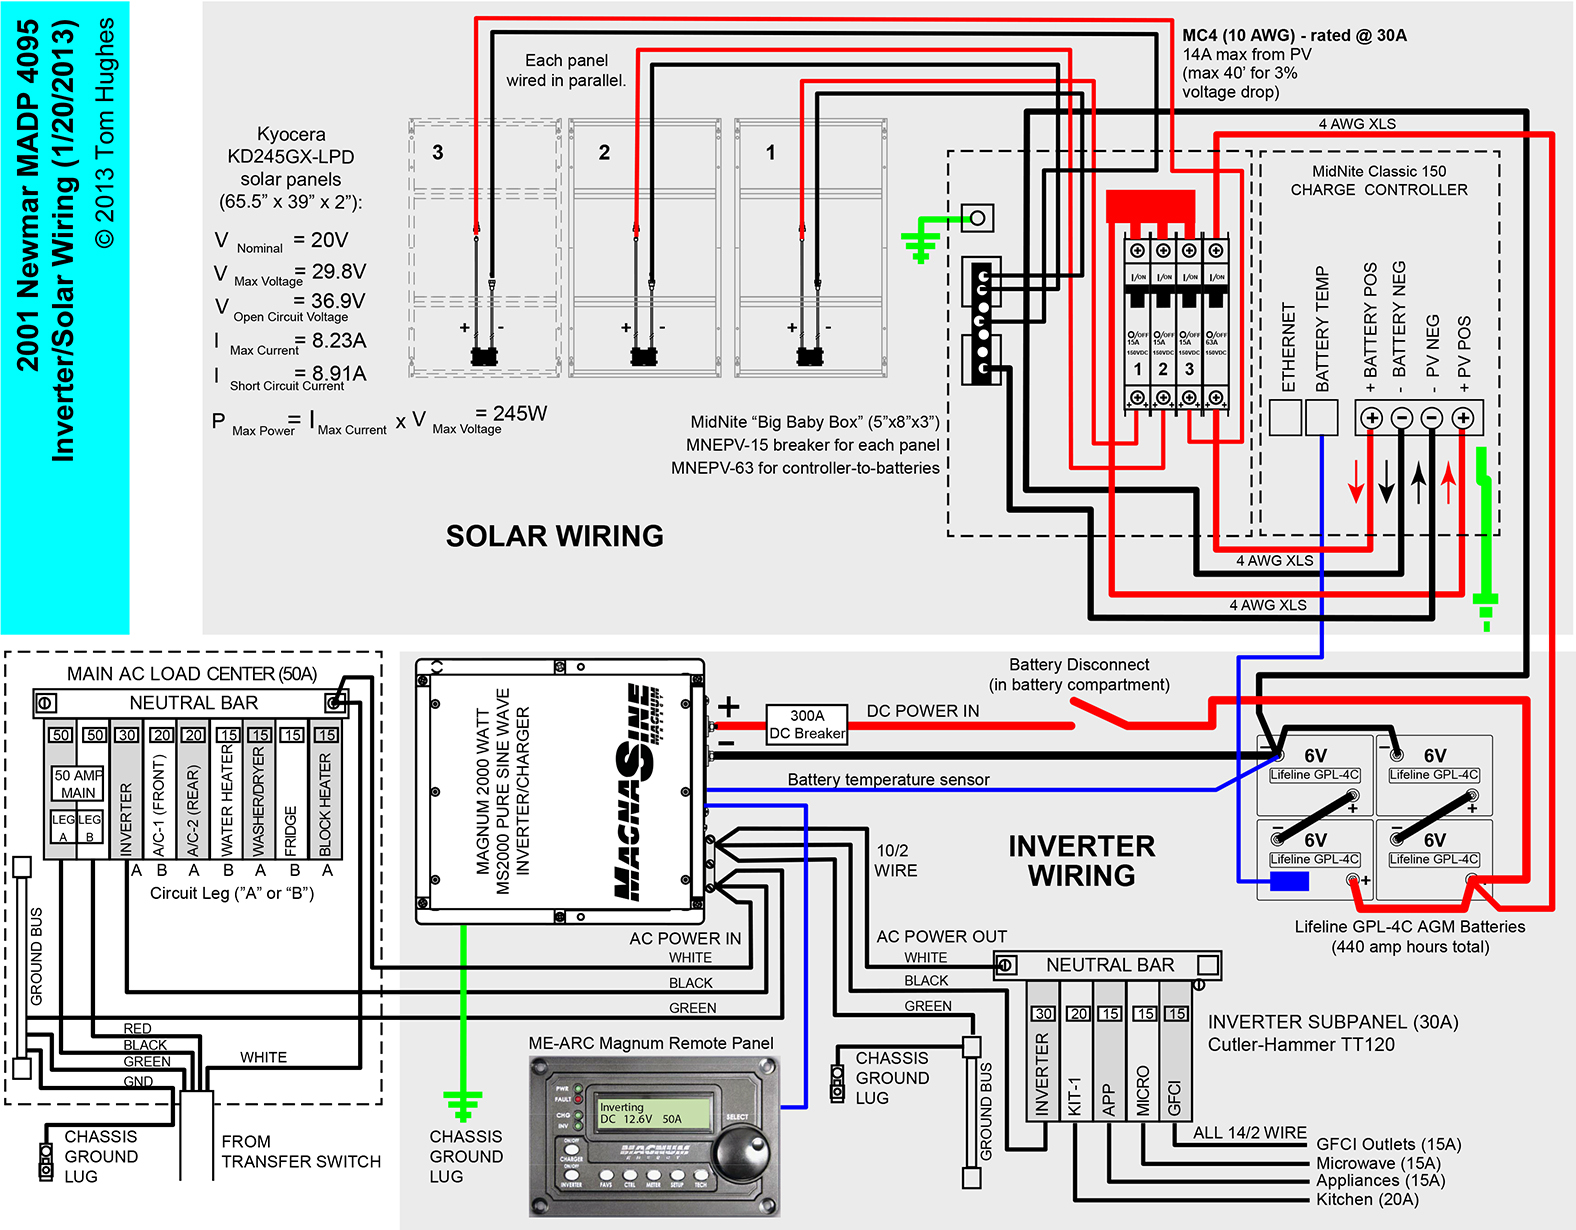 ms2000_newmar_inverter_wiring_01_20_2013 rv inverter diagram rv inverter transfer switch \u2022 wiring diagrams Simple Electrical Wiring Diagrams at crackthecode.co